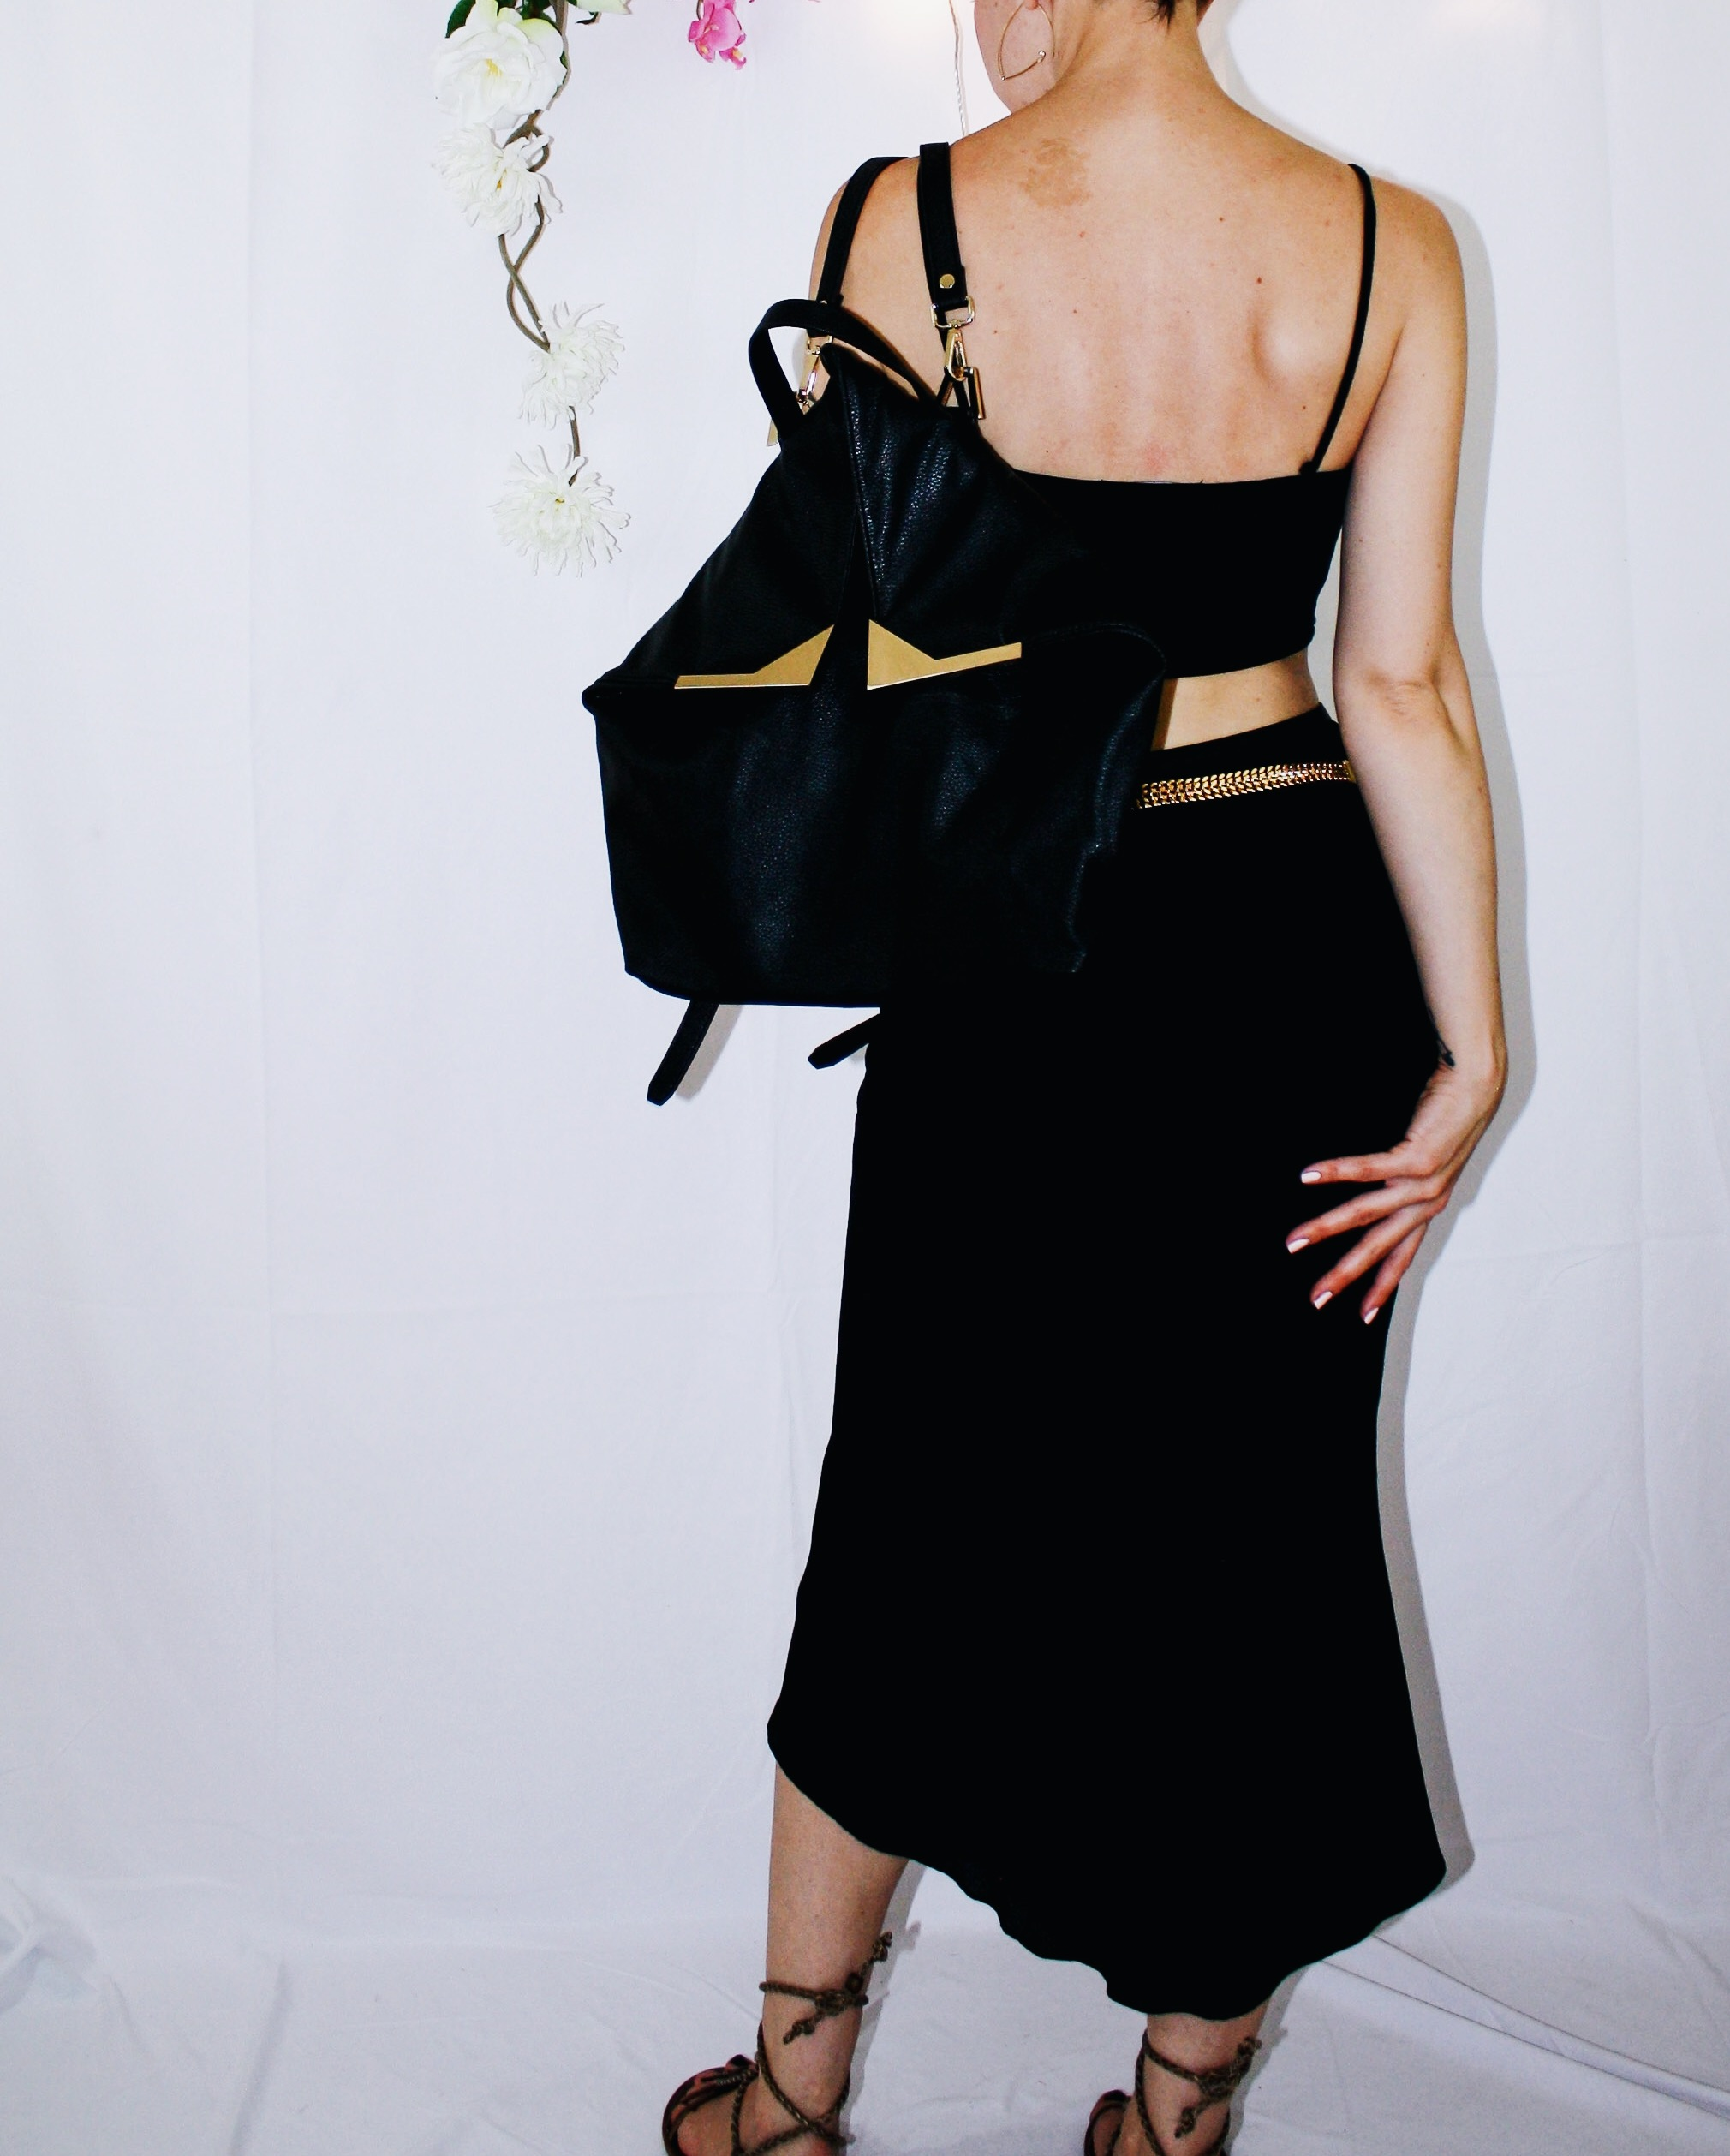 heatwave outfit waterfall skirt black crop top lace up sandal backpack 7